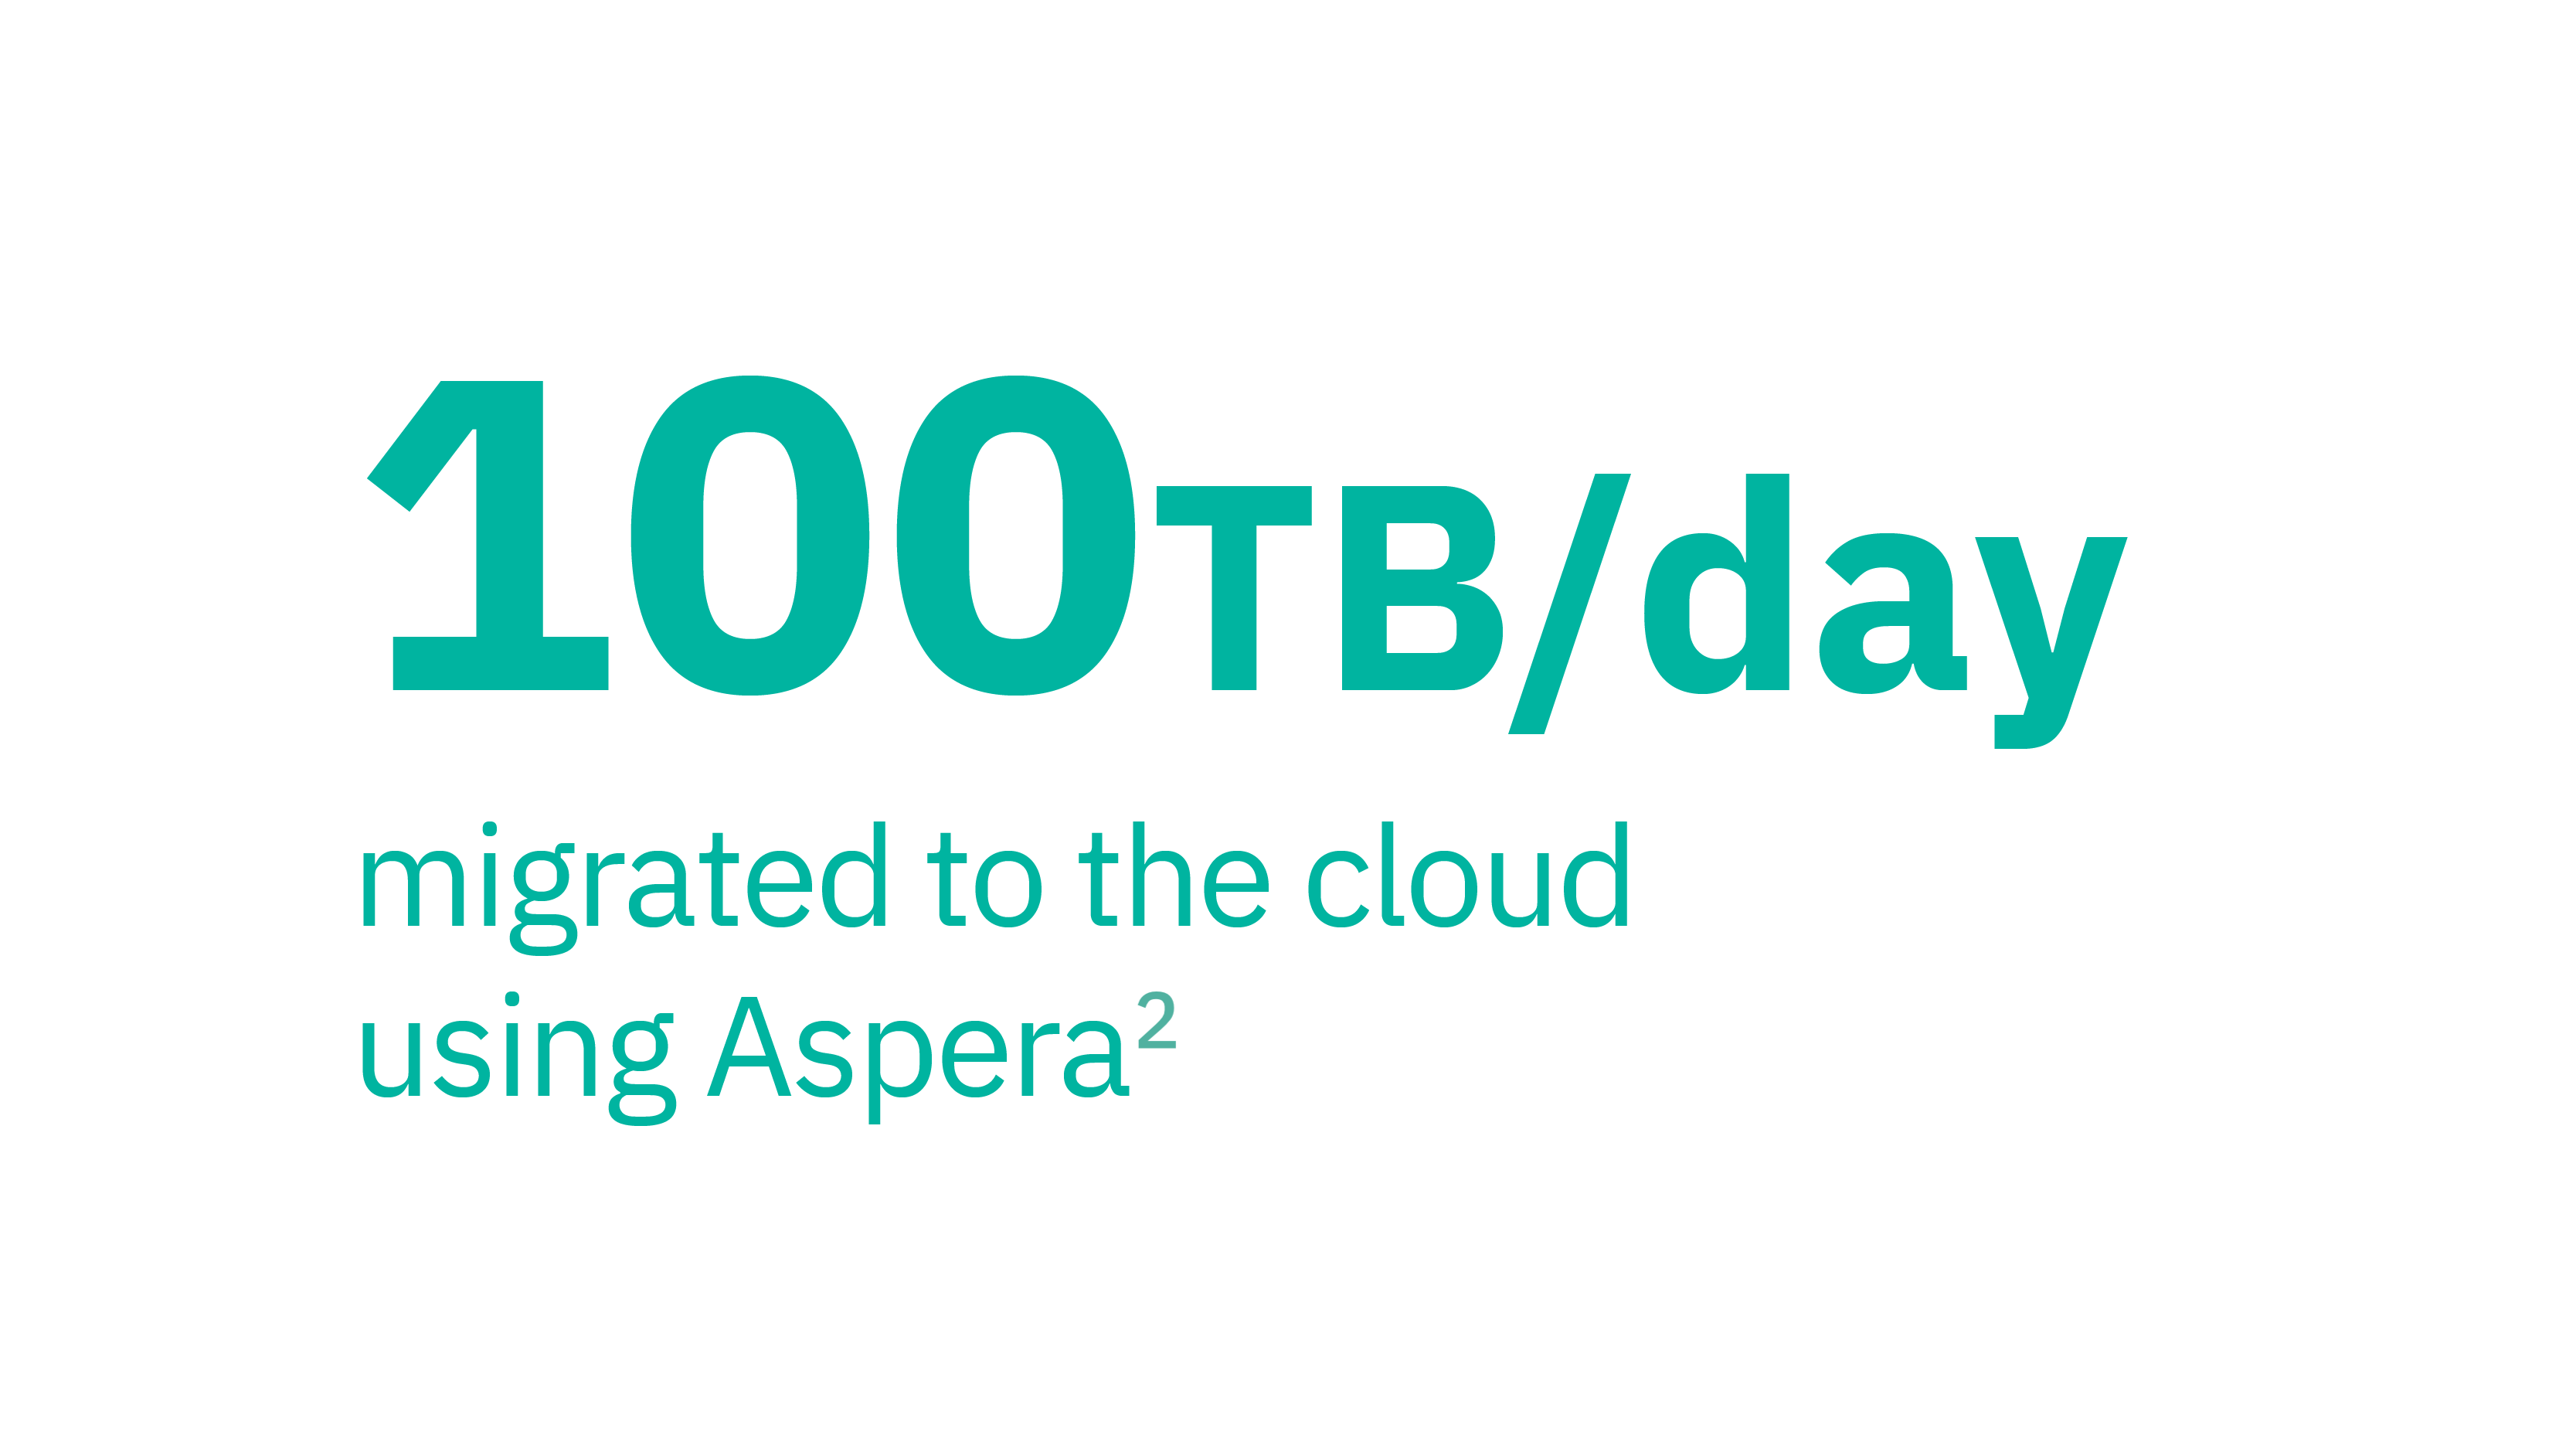 100 TB/day migrated to the cloud using Aspera